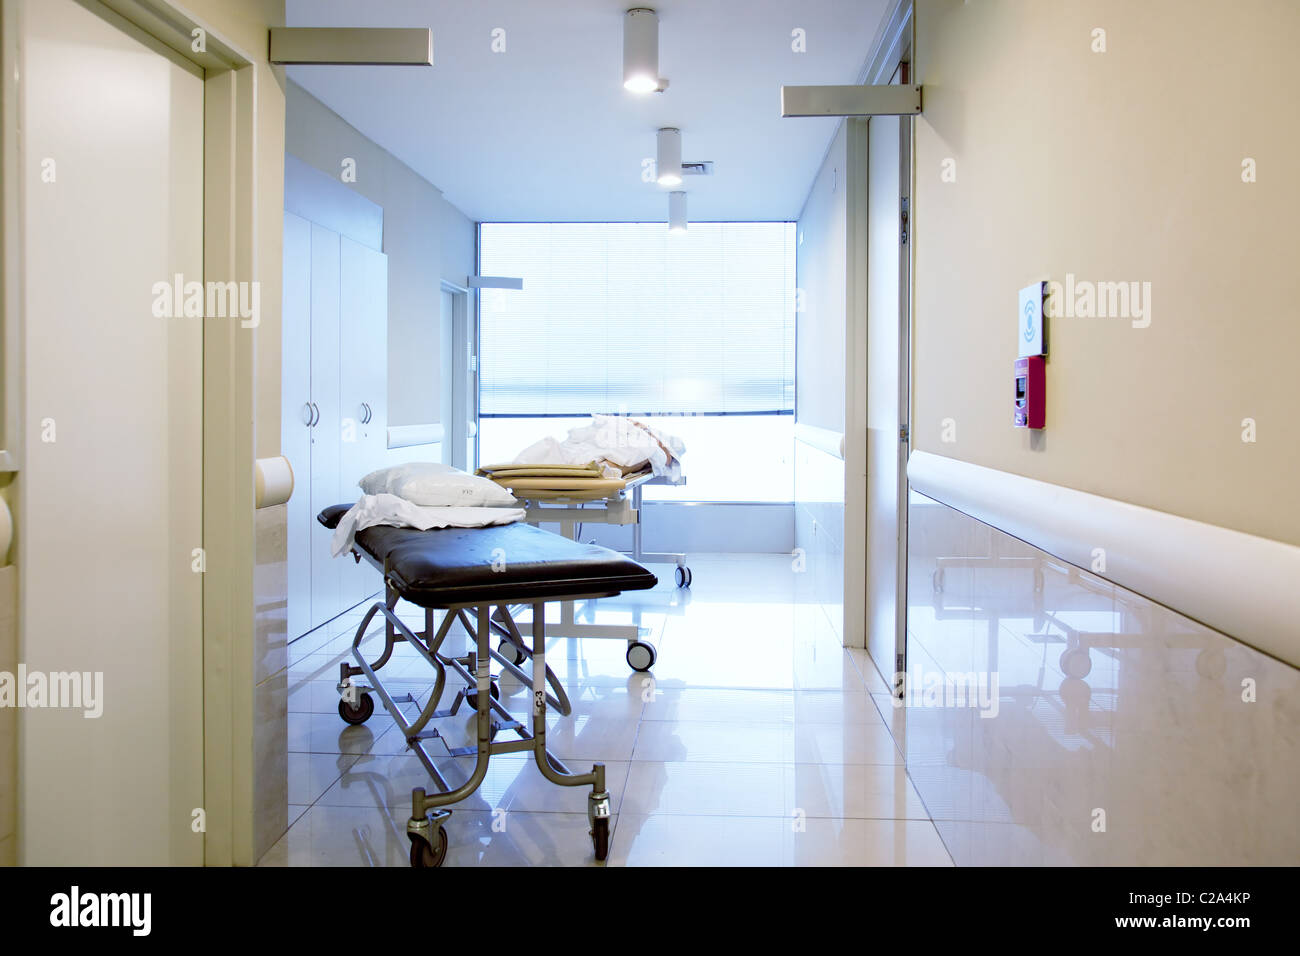 An interior of a hospital hallway with a couple stretchers - Stock Image